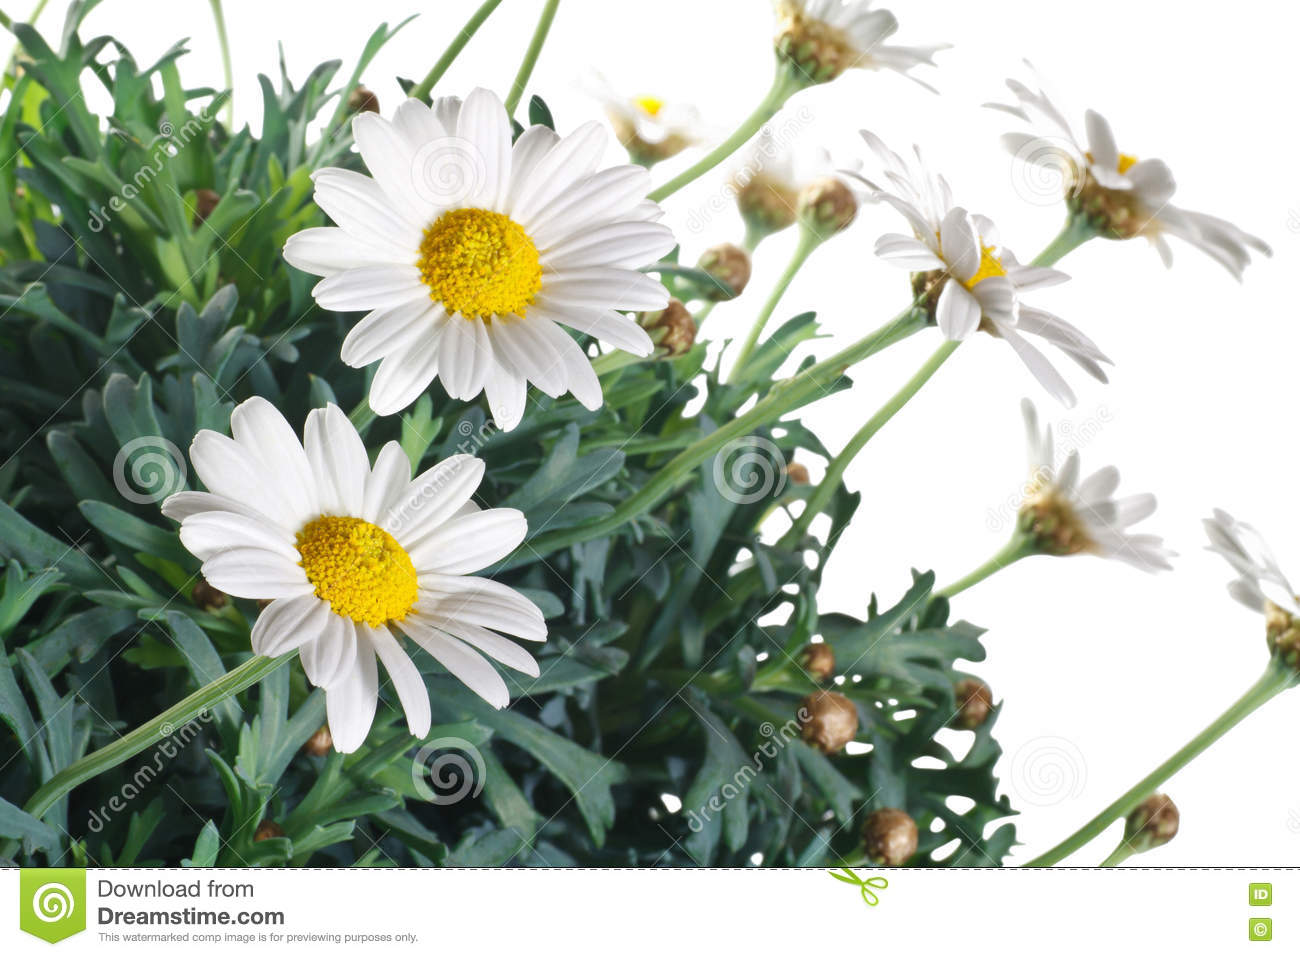 Daisy Flowers And Leaves Stock Image Image Of Botany 73298989